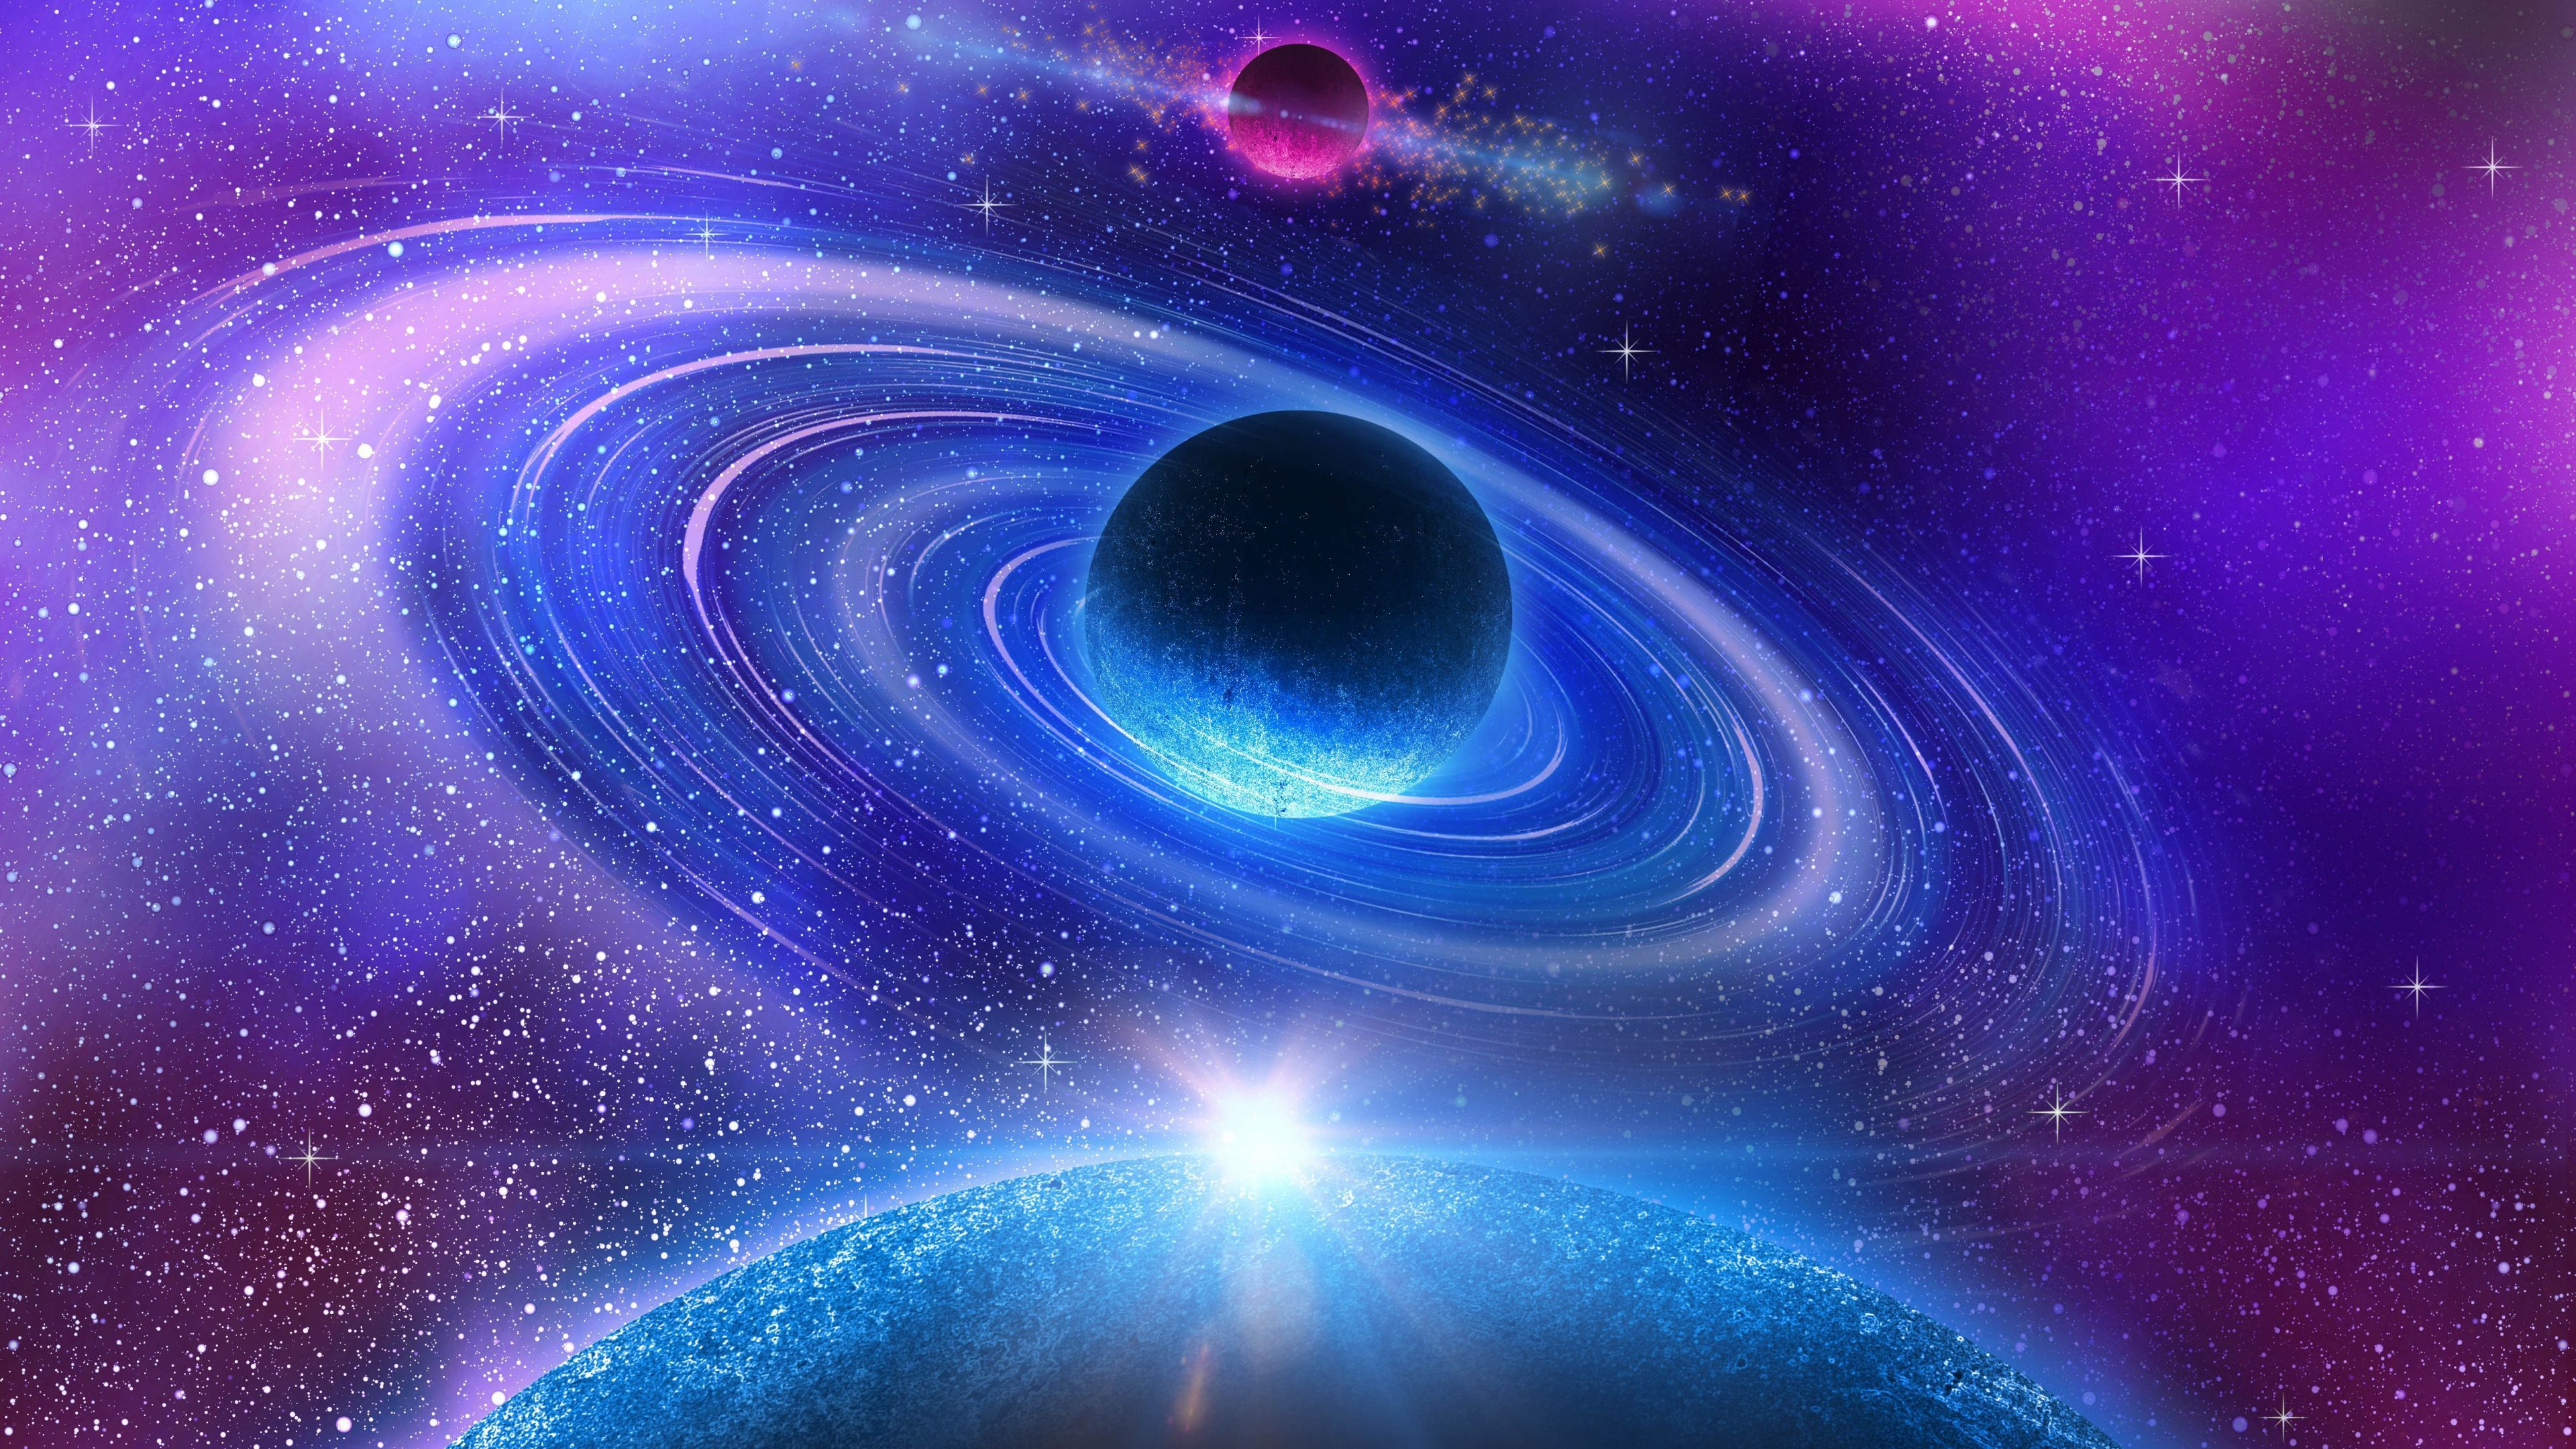 hd wallpapers for laptop,outer space,galaxy,universe,astronomical object,space